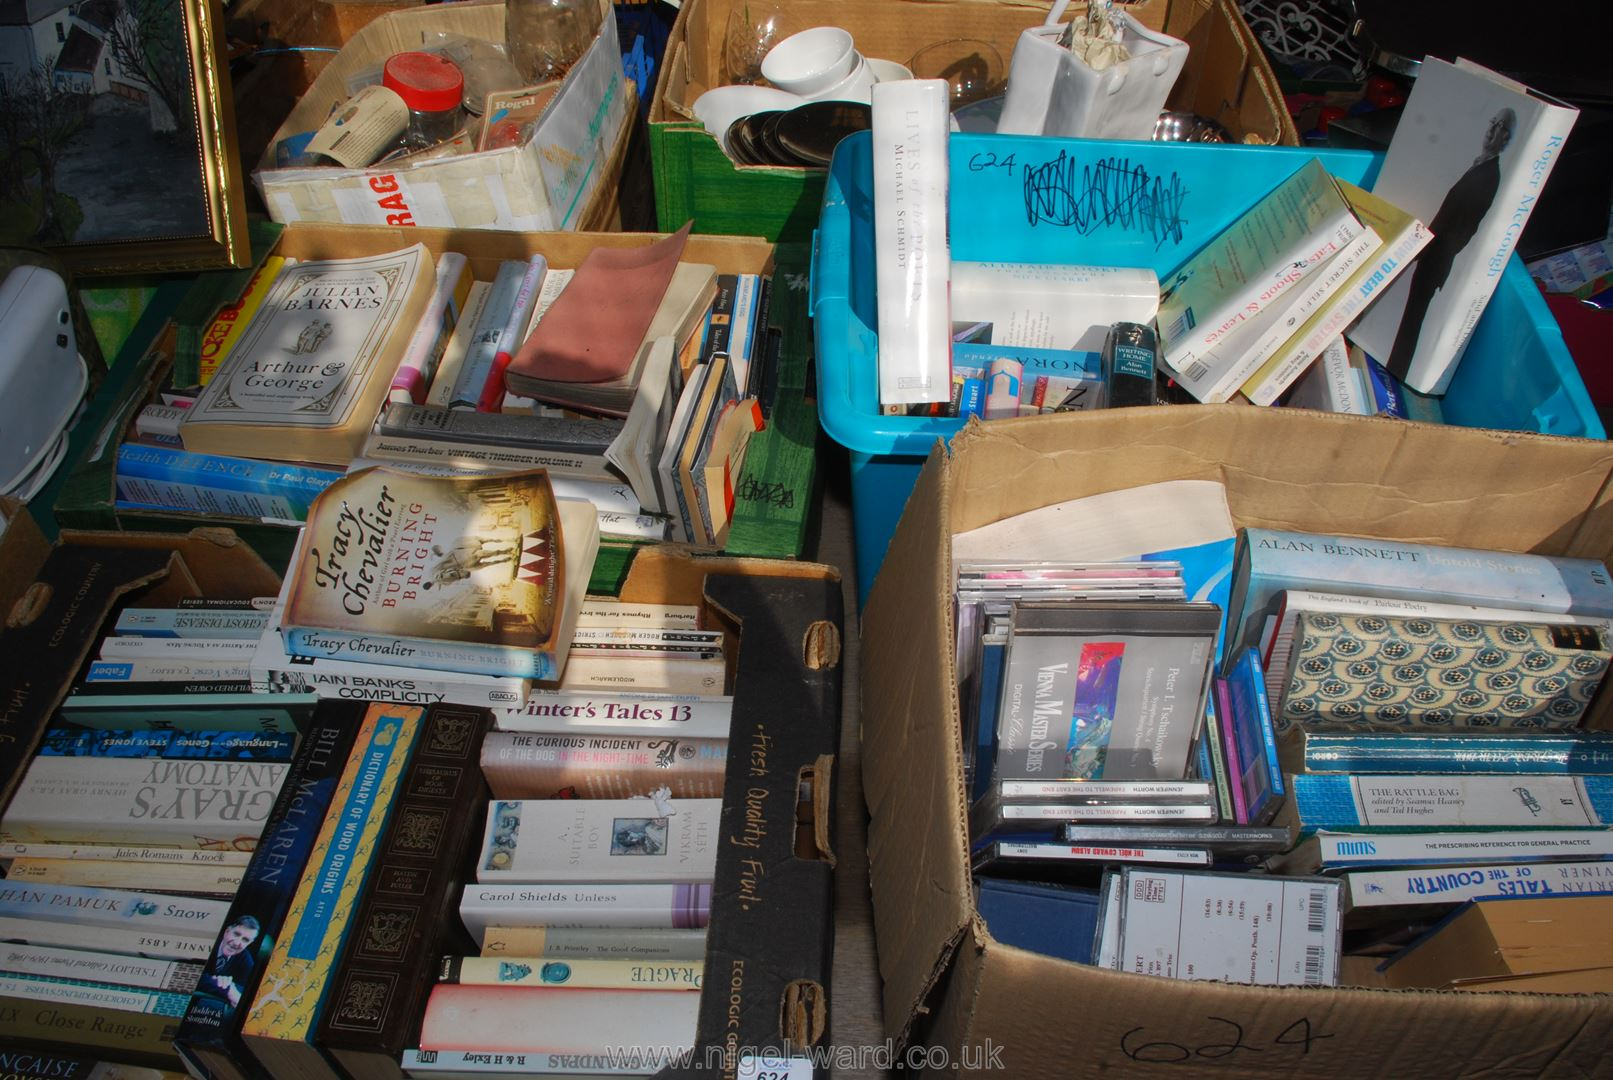 Four boxes of books including Grey's Anatomy etc